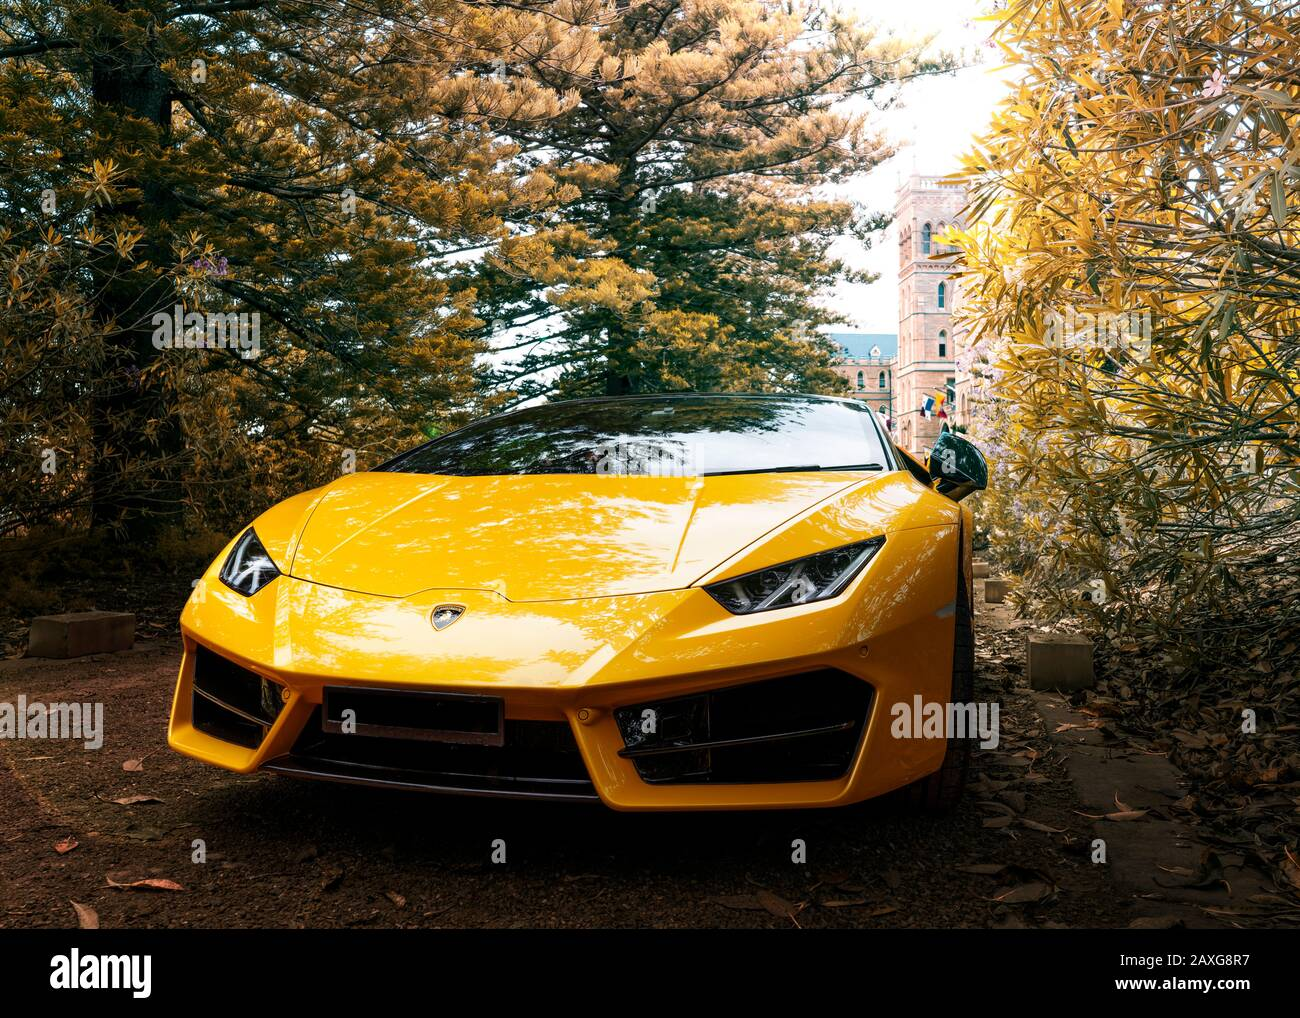 Yellow Lamborghini On Display In Manly Sydney In Front Of Historical Vintage Euro Building Stock Photo Alamy